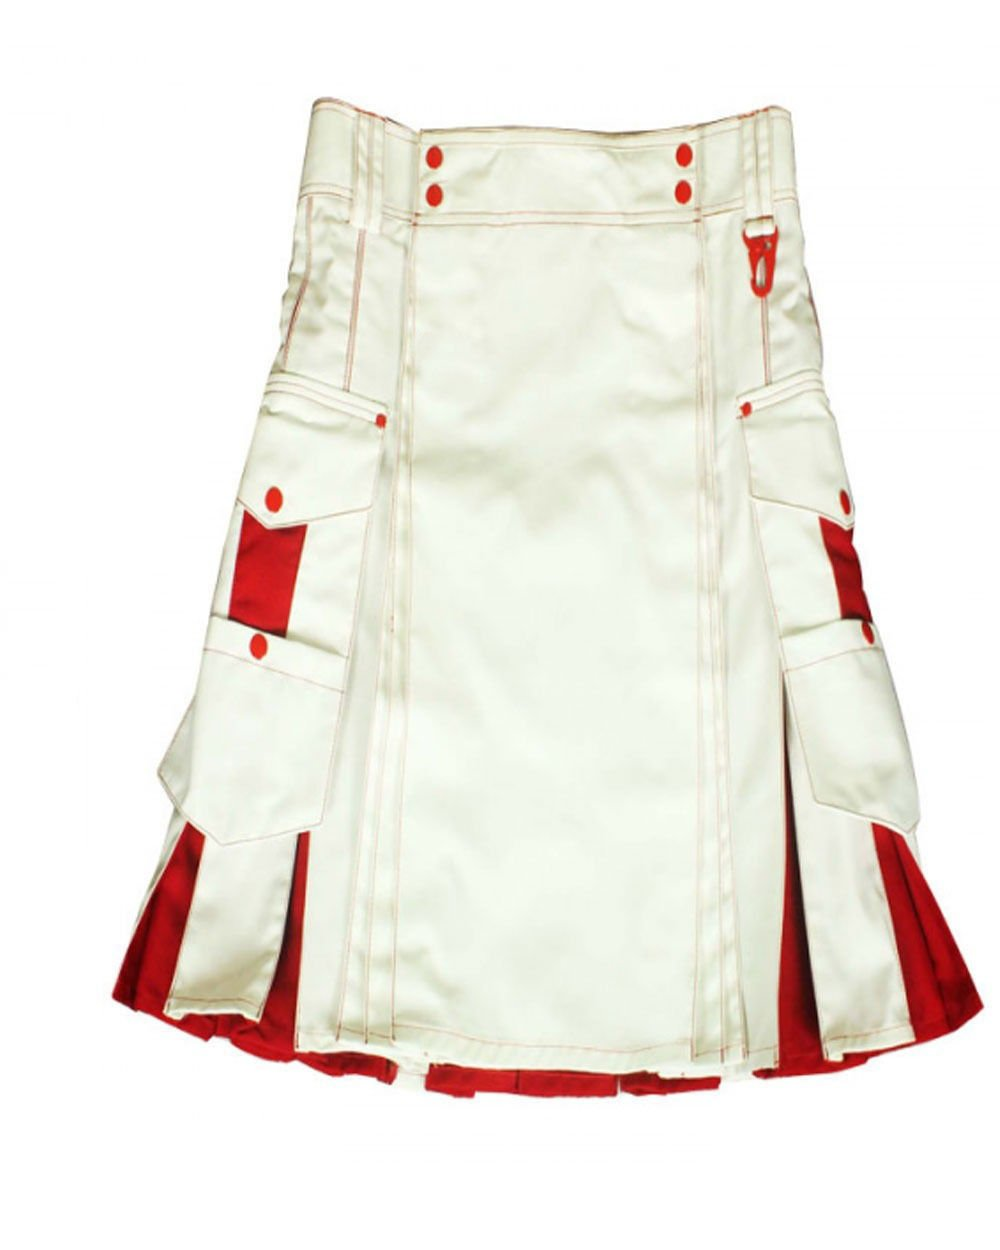 58 Size Handmade White & Red Cotton Kilt for Active Men, Hybrid Cotton Utility Deluxe Kilt